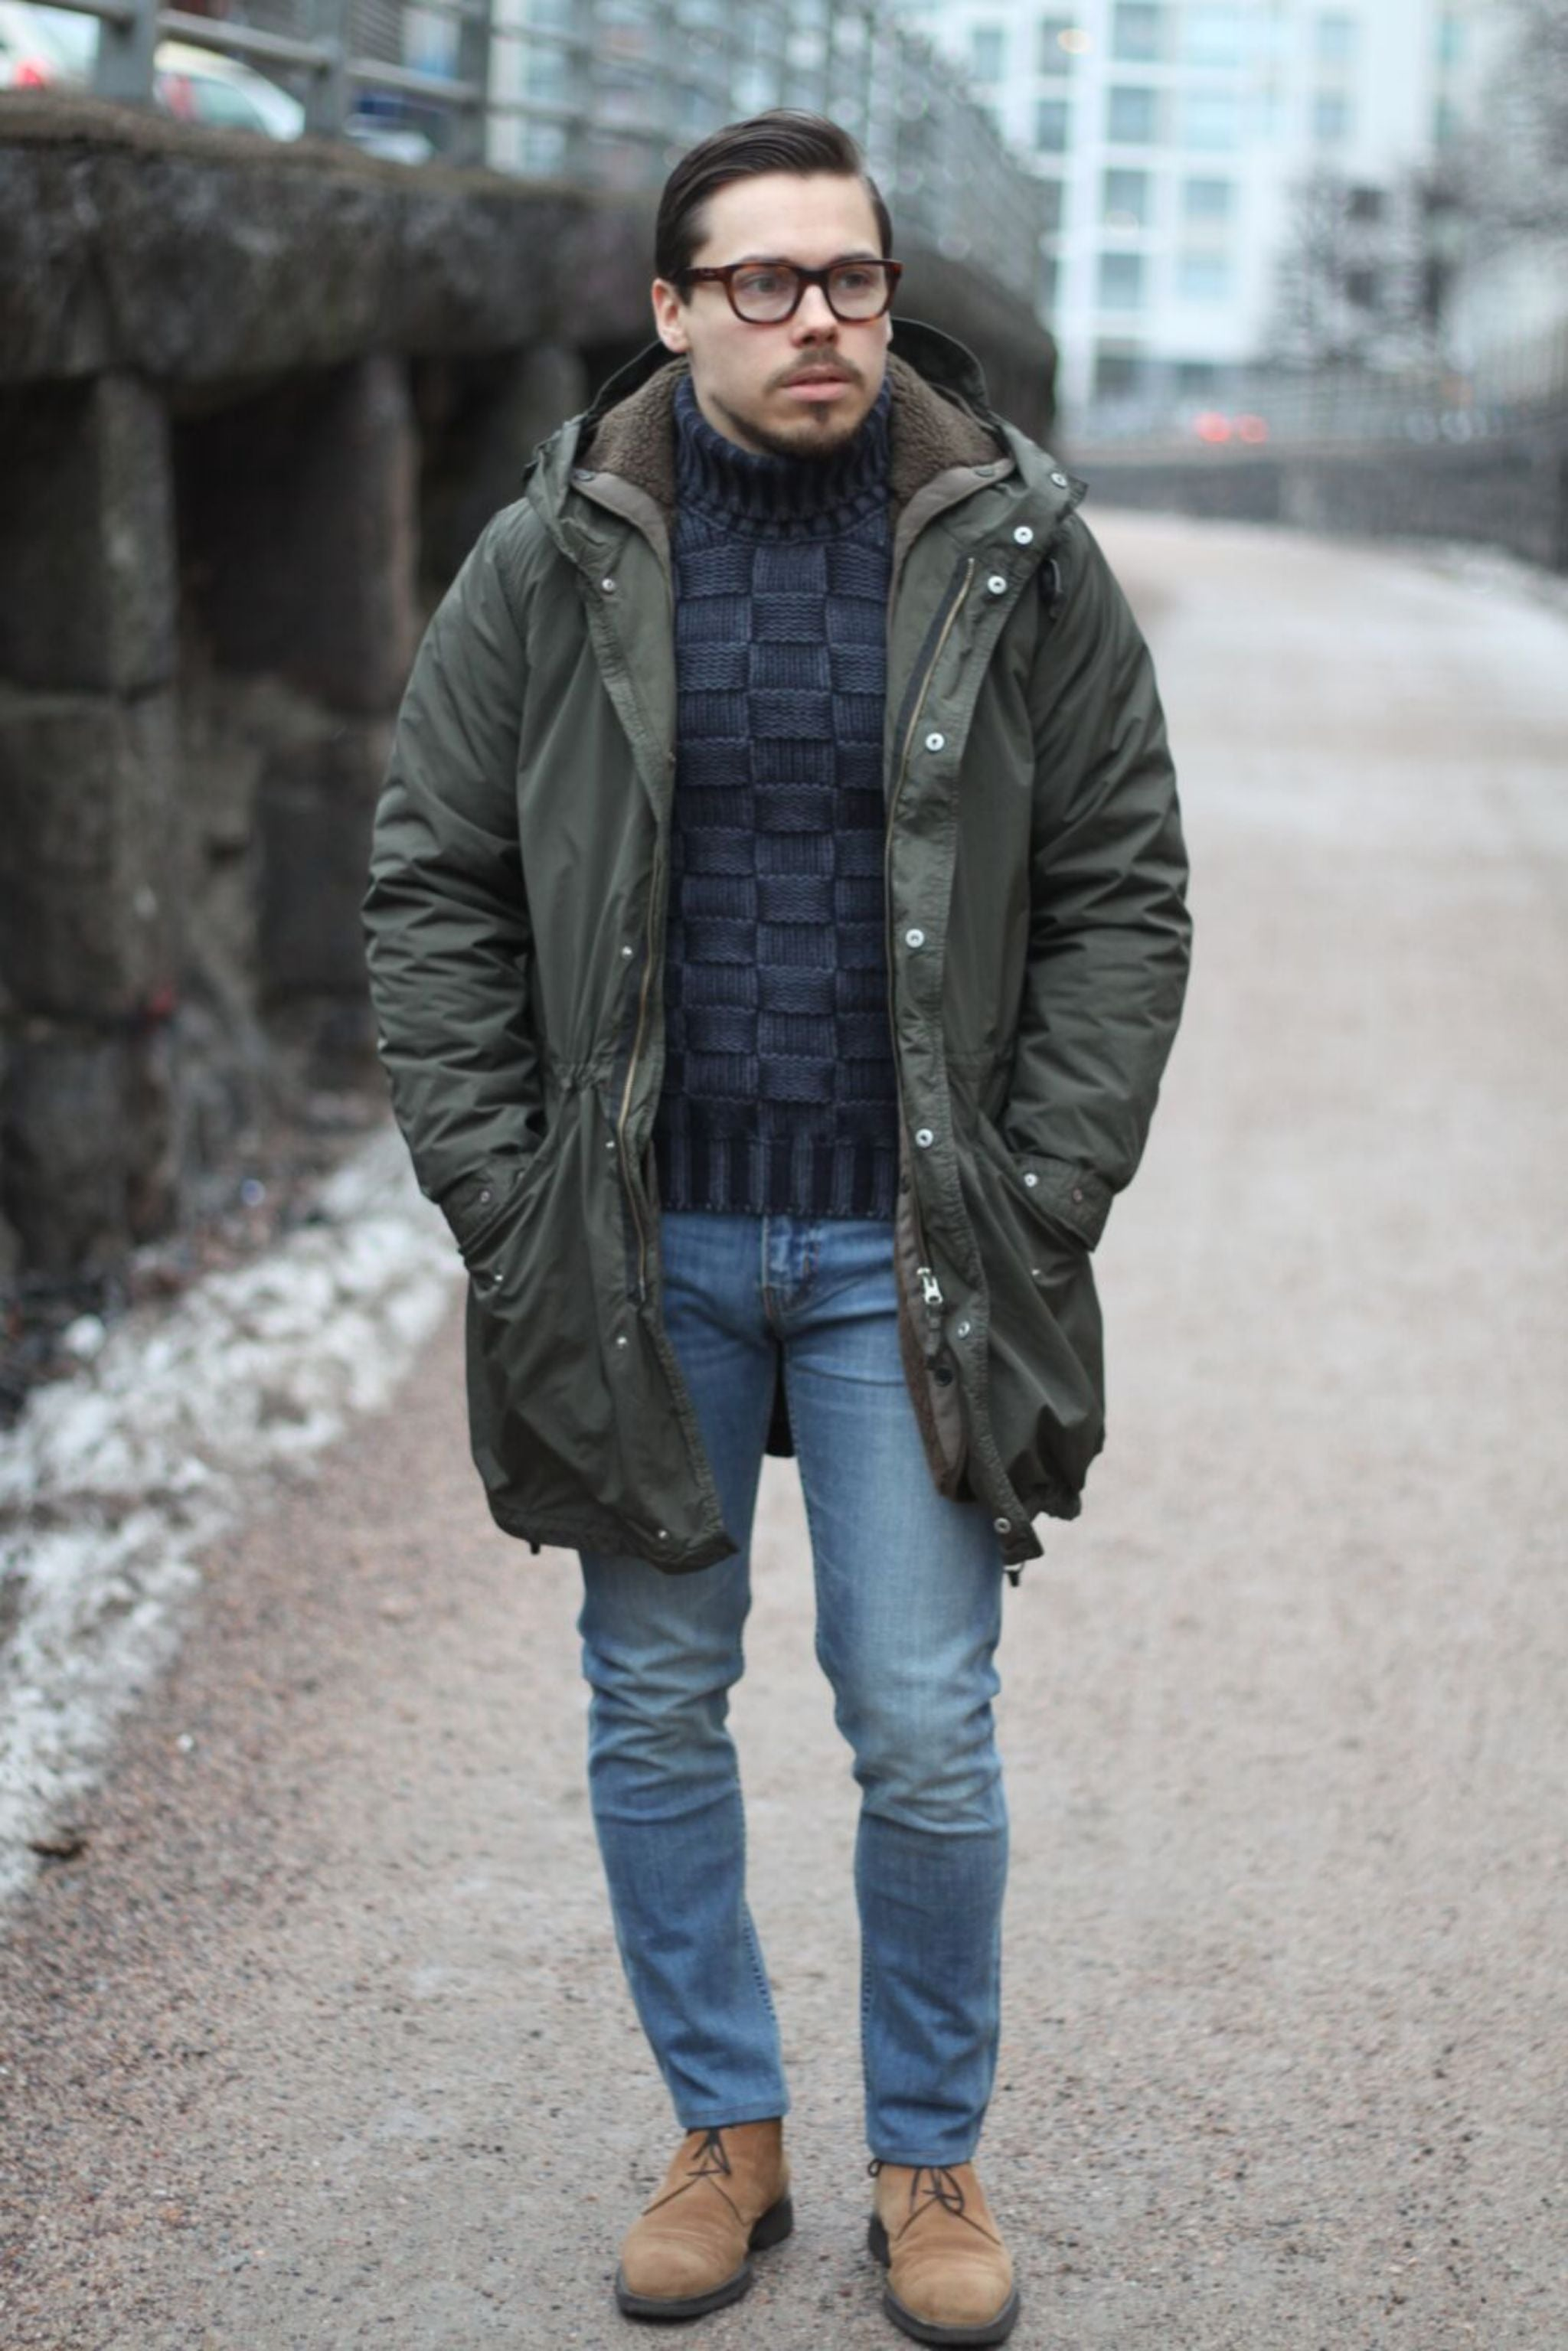 Military green Aspesi Lambrettone parka jacket with light colored denim